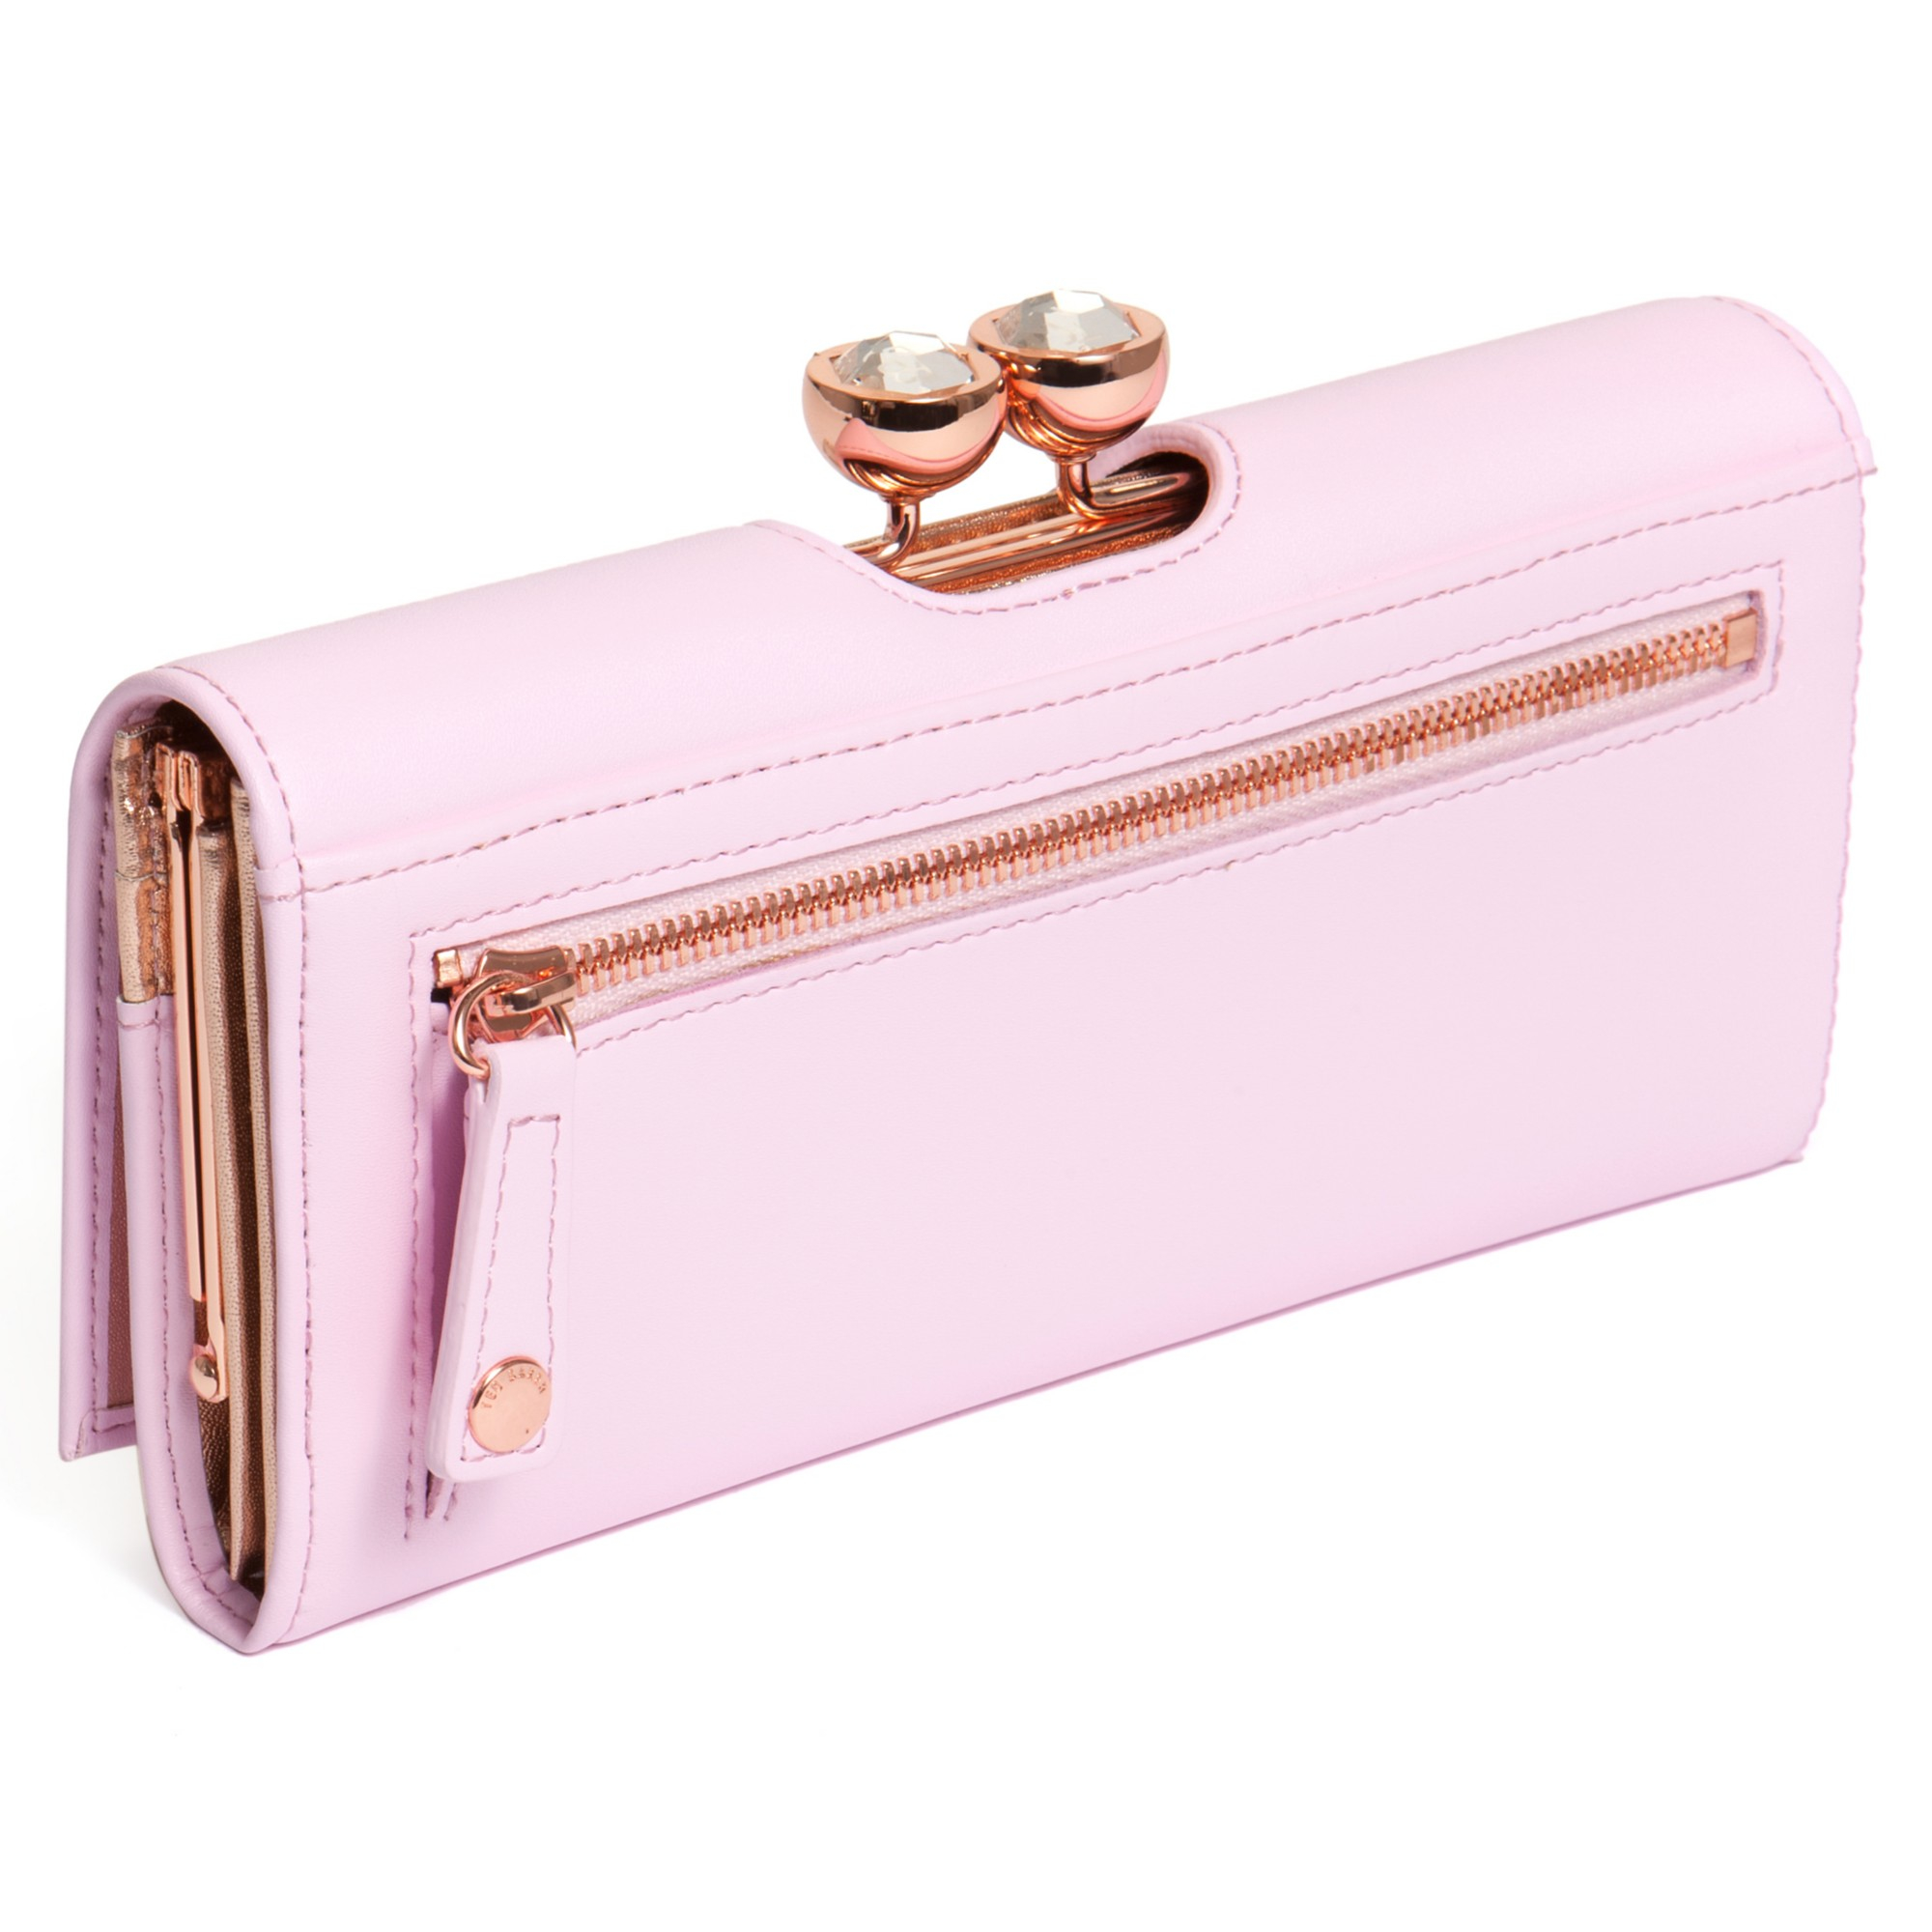 0f7d50966b1189 Ted Baker Pink Crystal Bow Bobble Matinee Purse - Best Purse Image ...